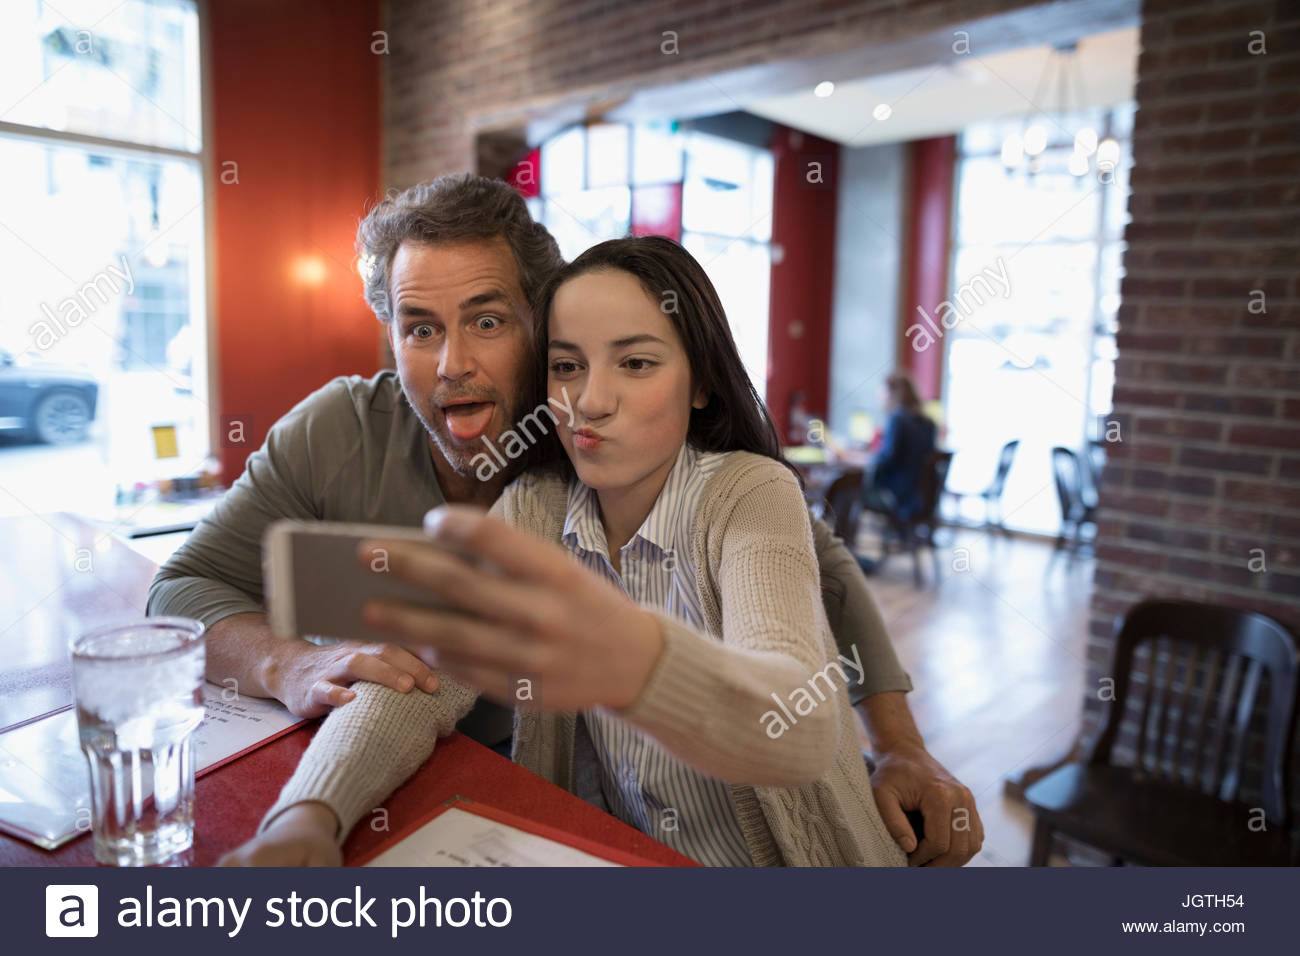 Father and teenage daughter taking selfie at diner counter - Stock Image